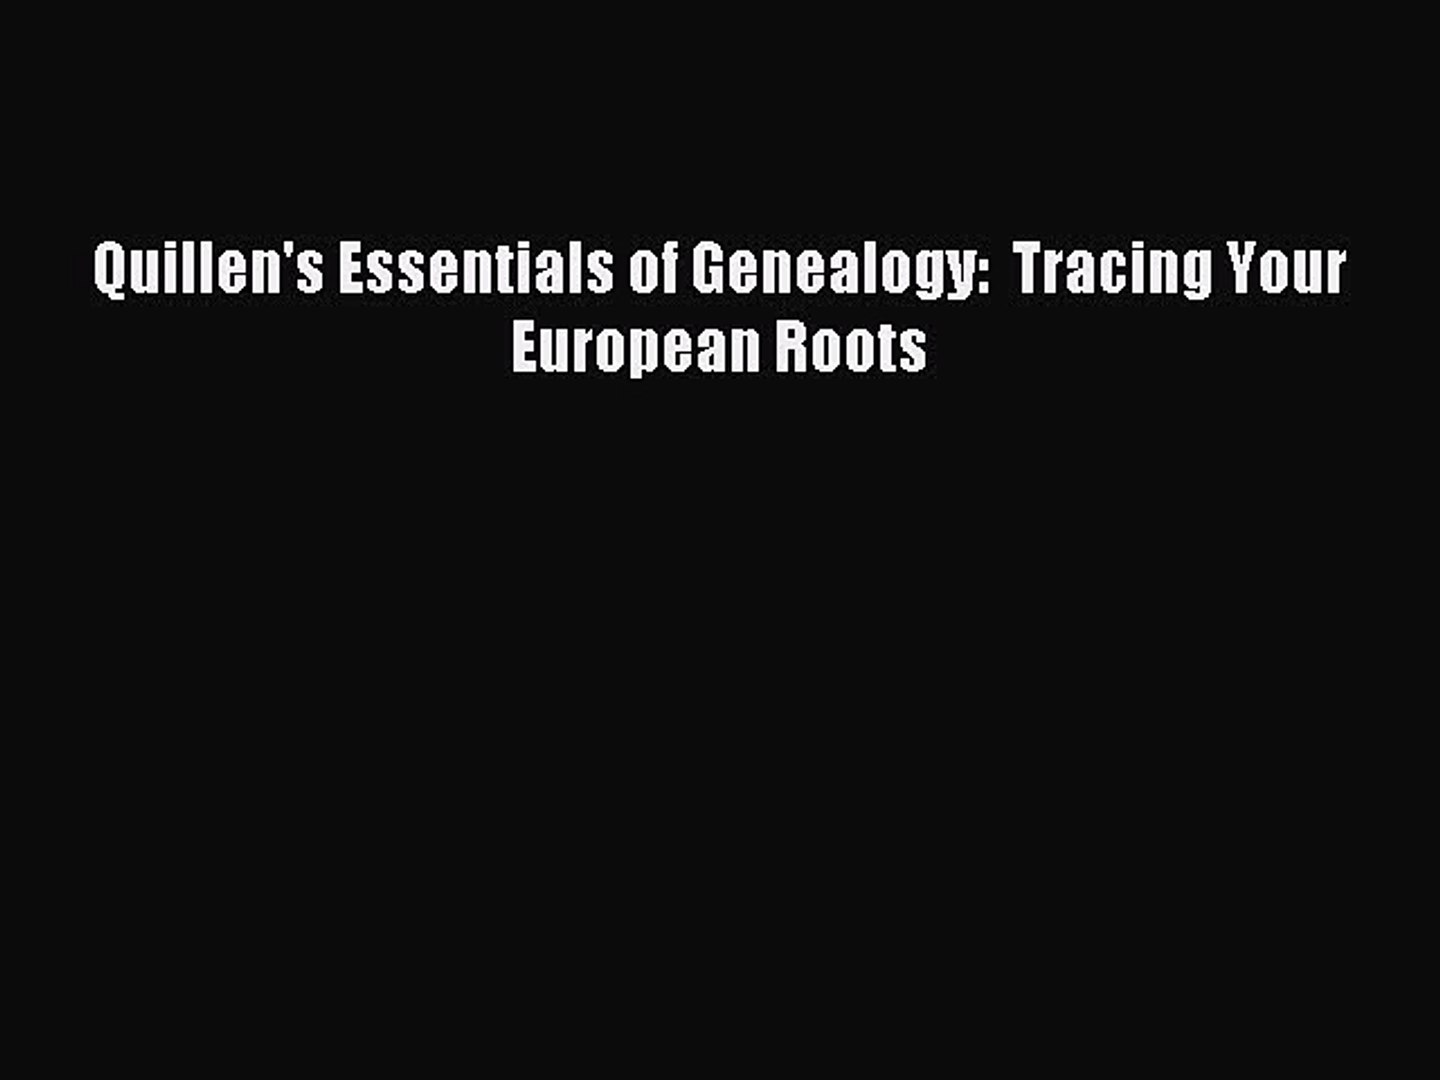 Read Quillen's Essentials of Genealogy: Tracing Your European Roots PDF Free